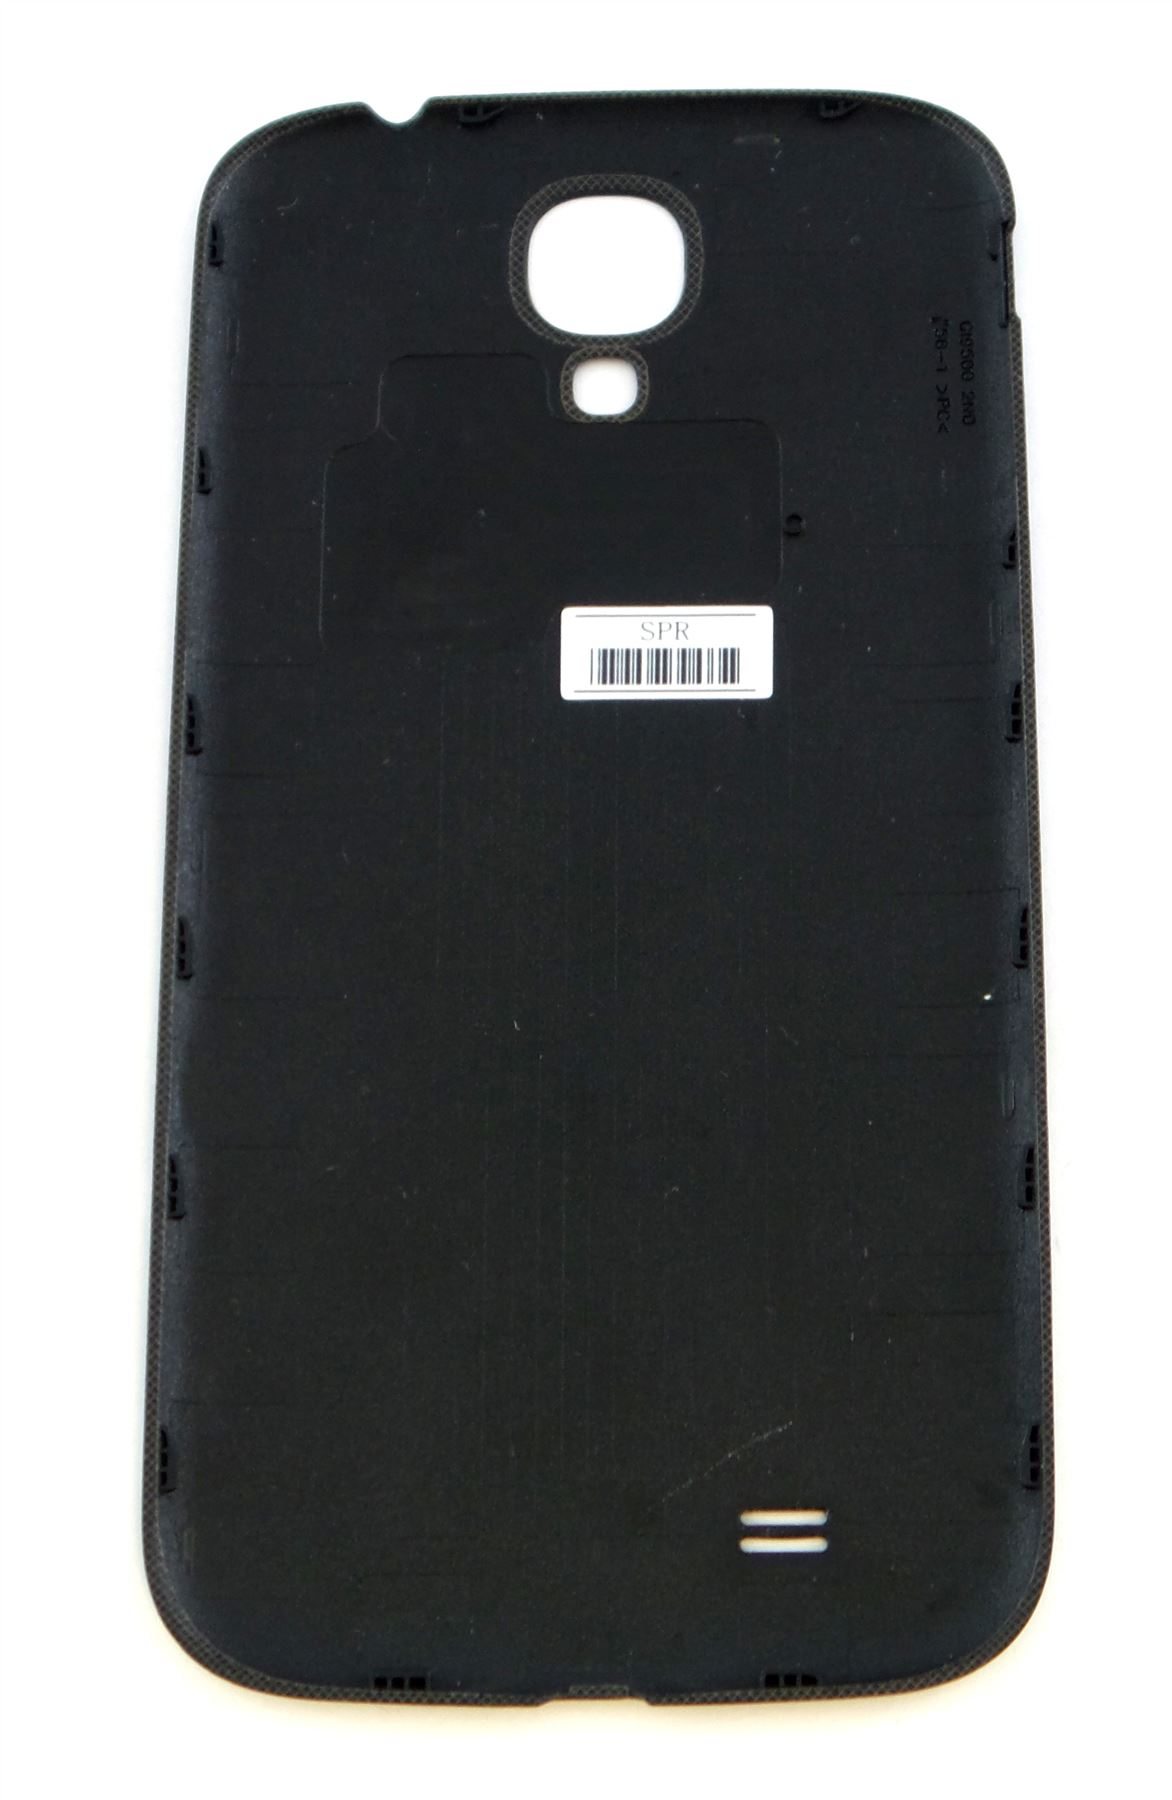 Samsung-Galaxy-S4-Authentic-Battery-Door-Cover-AT-amp-T-Verizon-T-Mobile thumbnail 64